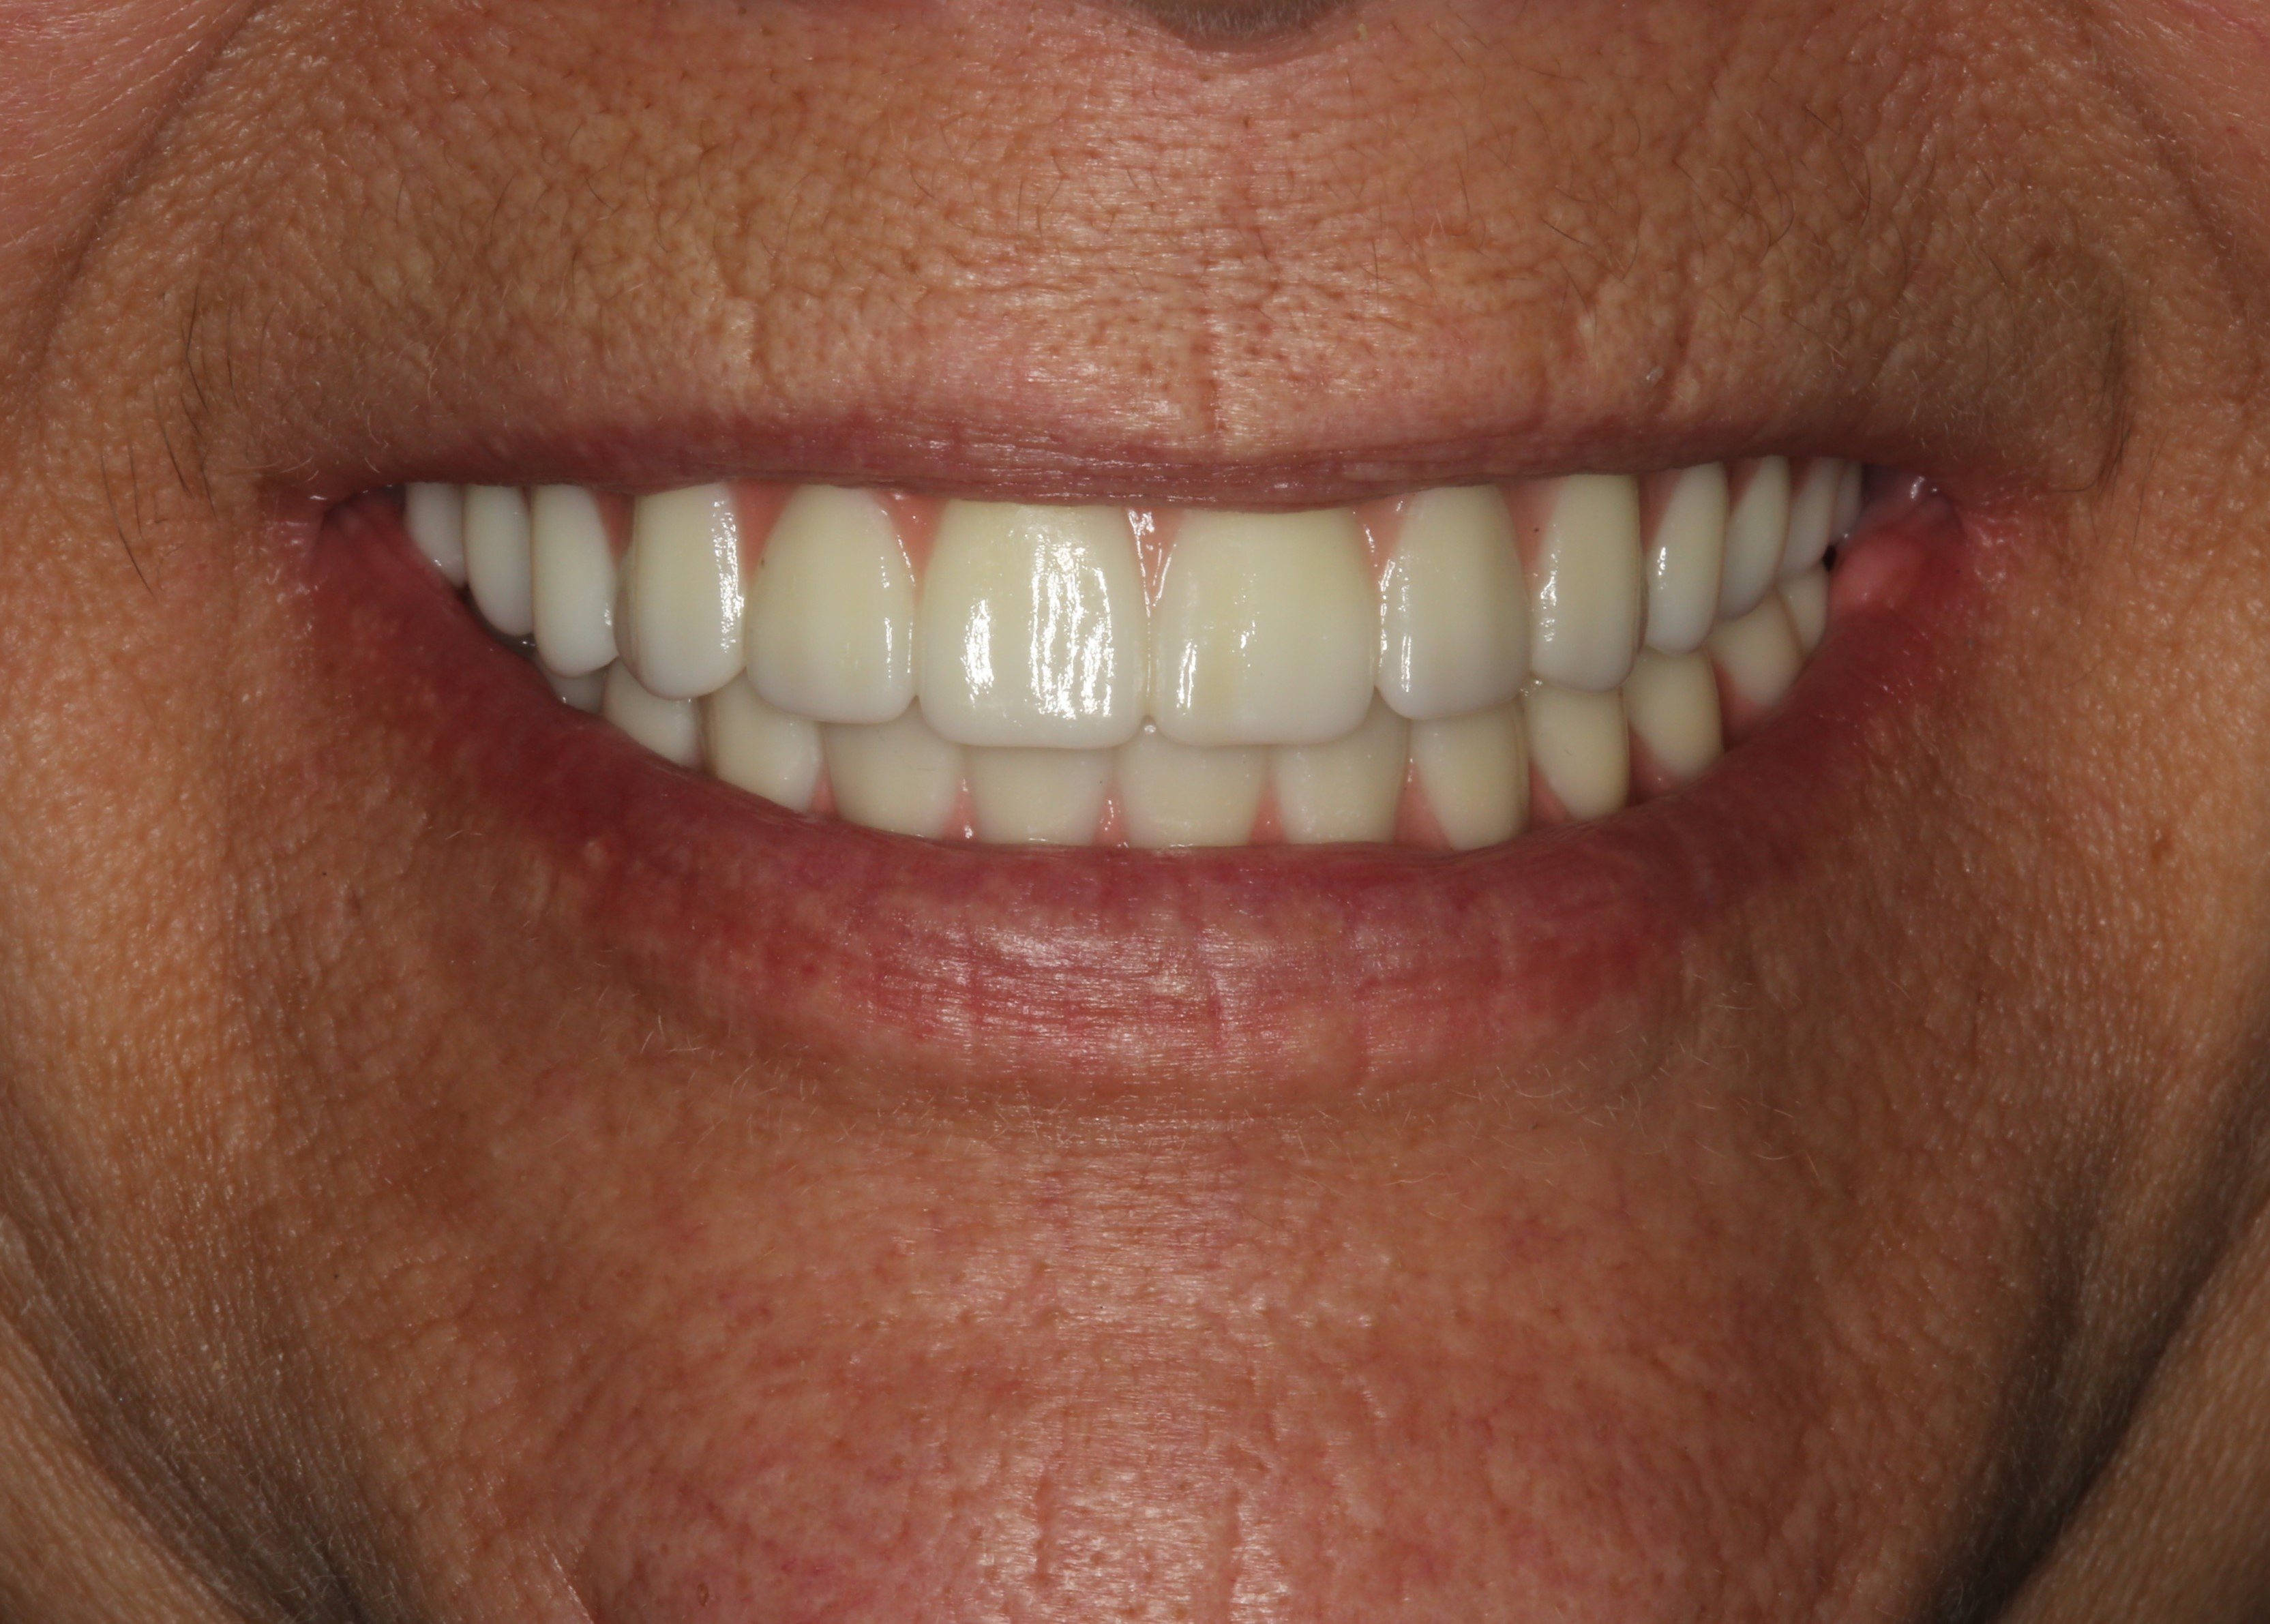 after all on 4 dental implants  travel dentistry  dental tourism  implant dentist  dental implants annapolis